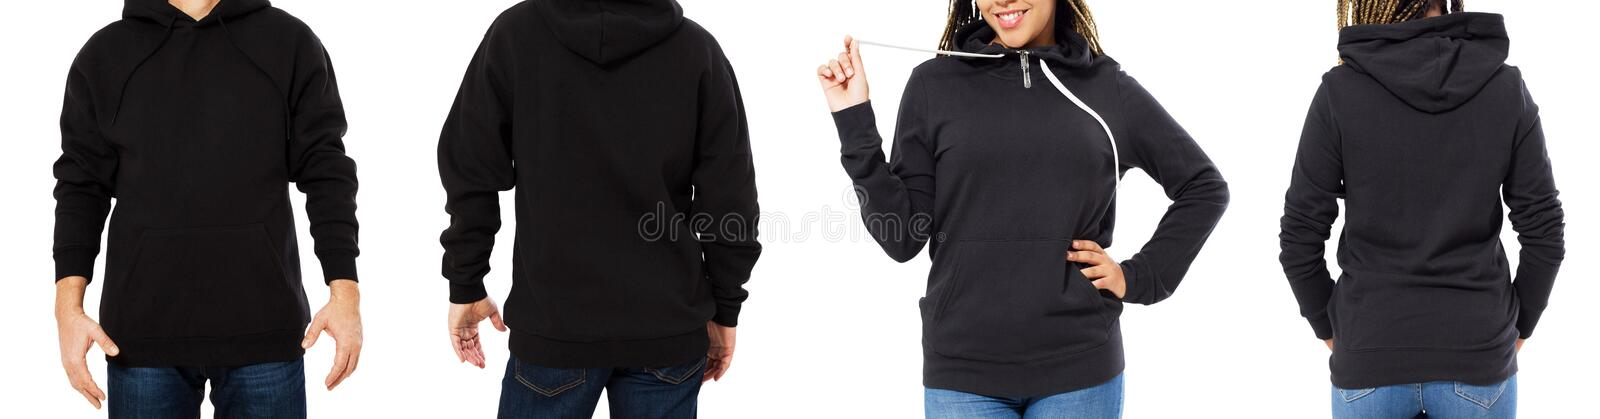 Front back and rear black sweatshirt view. Beautiful black female and male body in template clothes for print and copy space royalty free stock photo